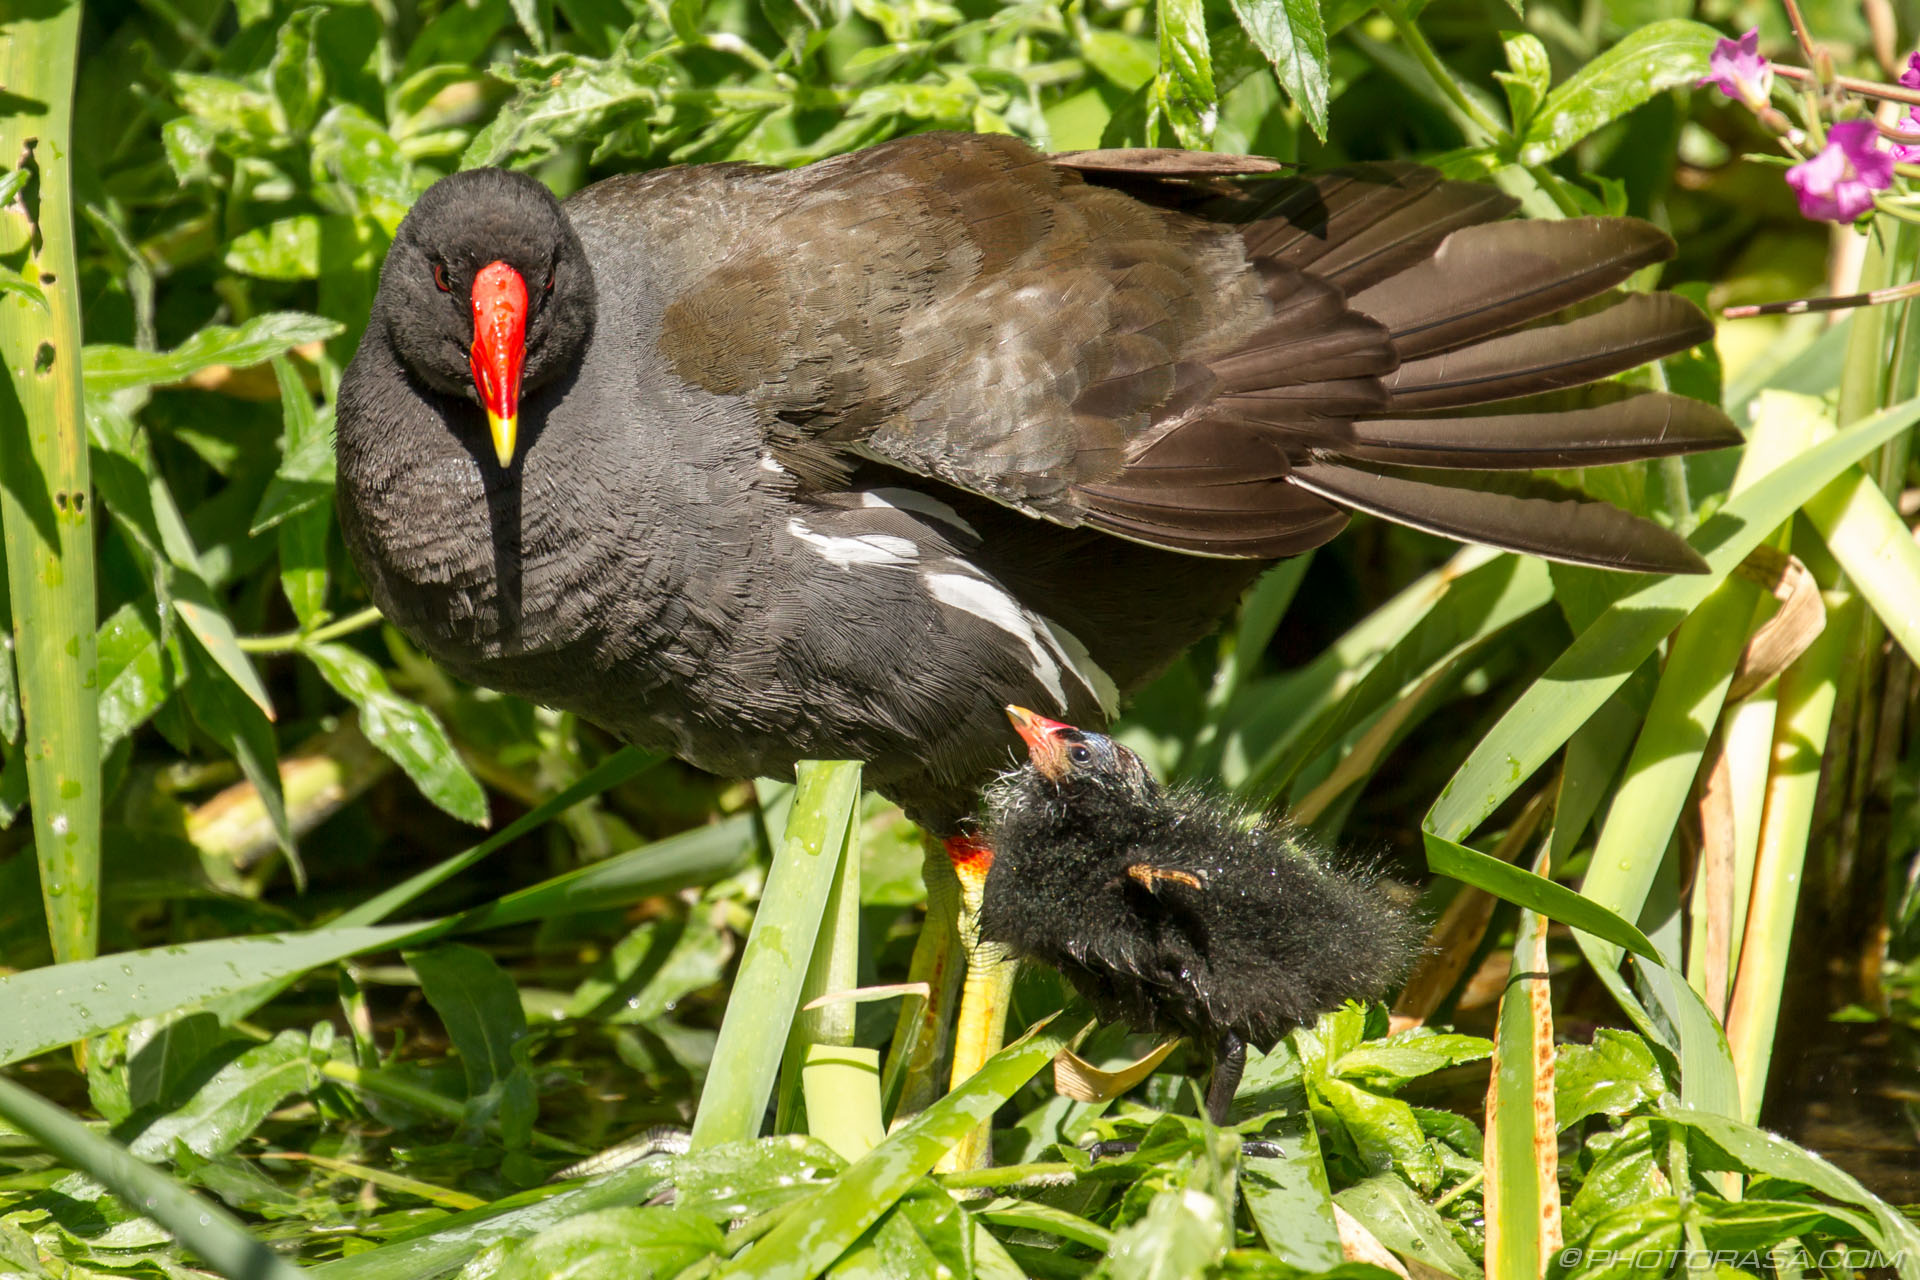 https://photorasa.com/baby-moorhen-and-mother/chick-staring-at-mother/